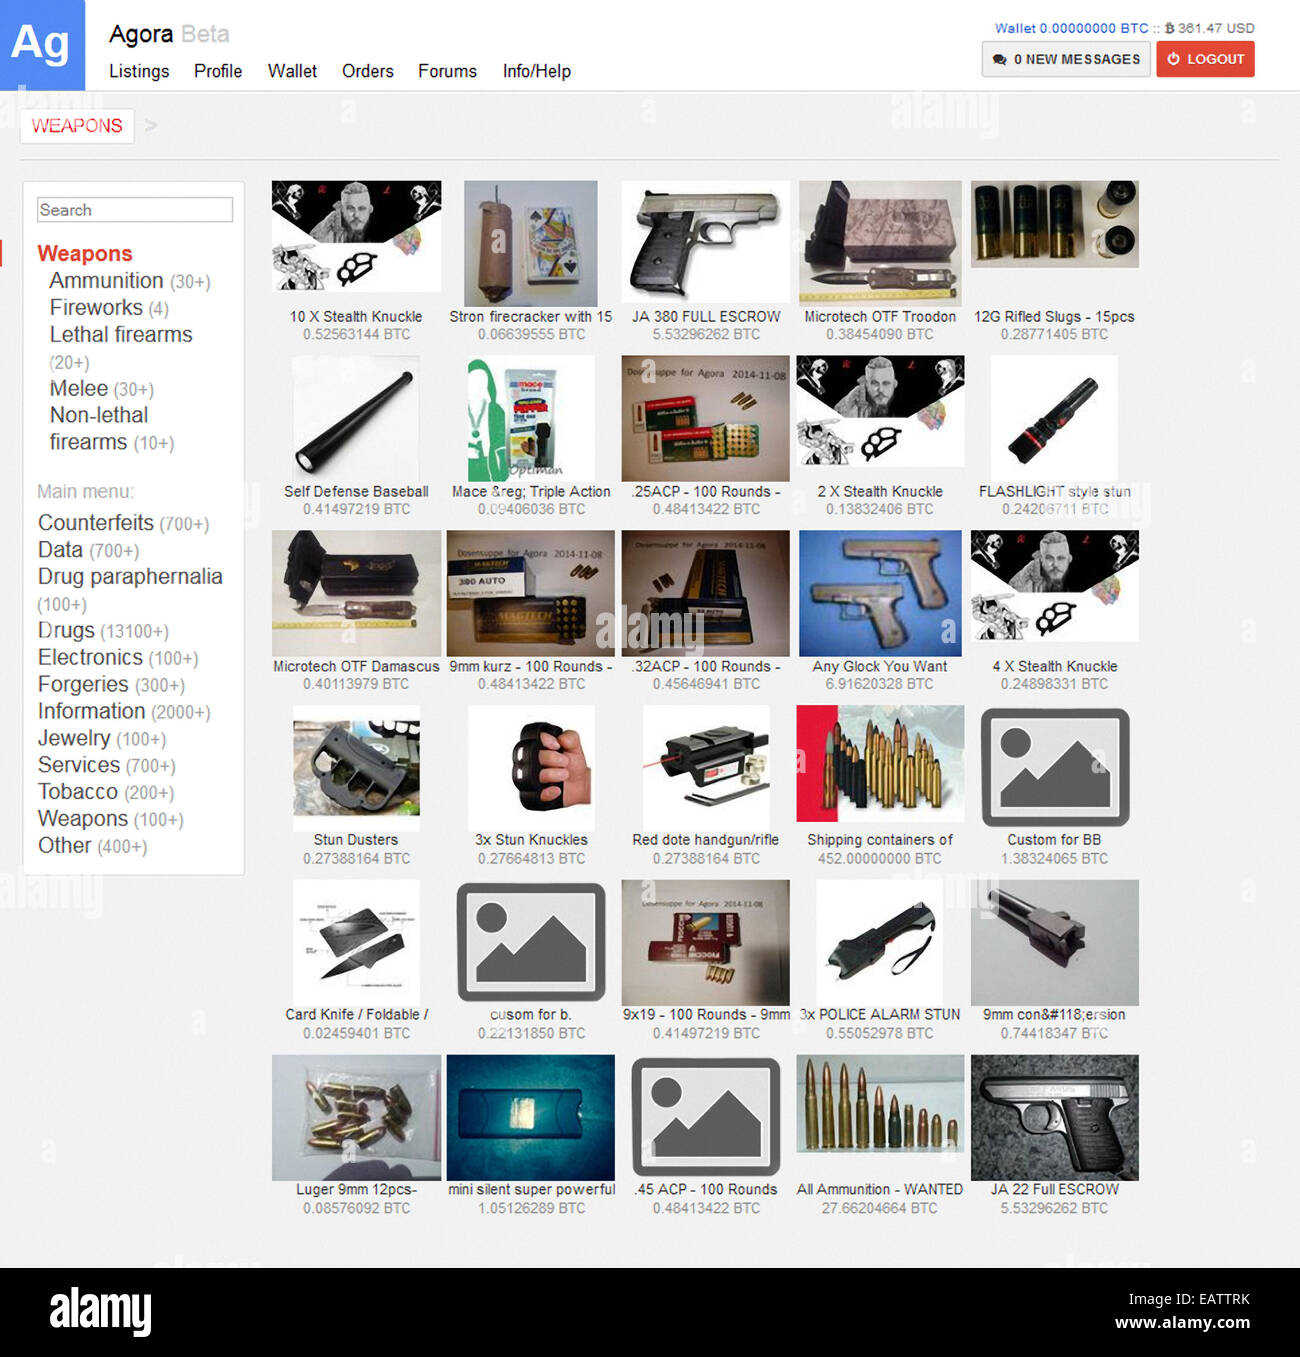 Agora Marketplace for illicit goods (drugs, counterfeits, weapons) established 3 December 2013 accessed on the darknet - Stock Image